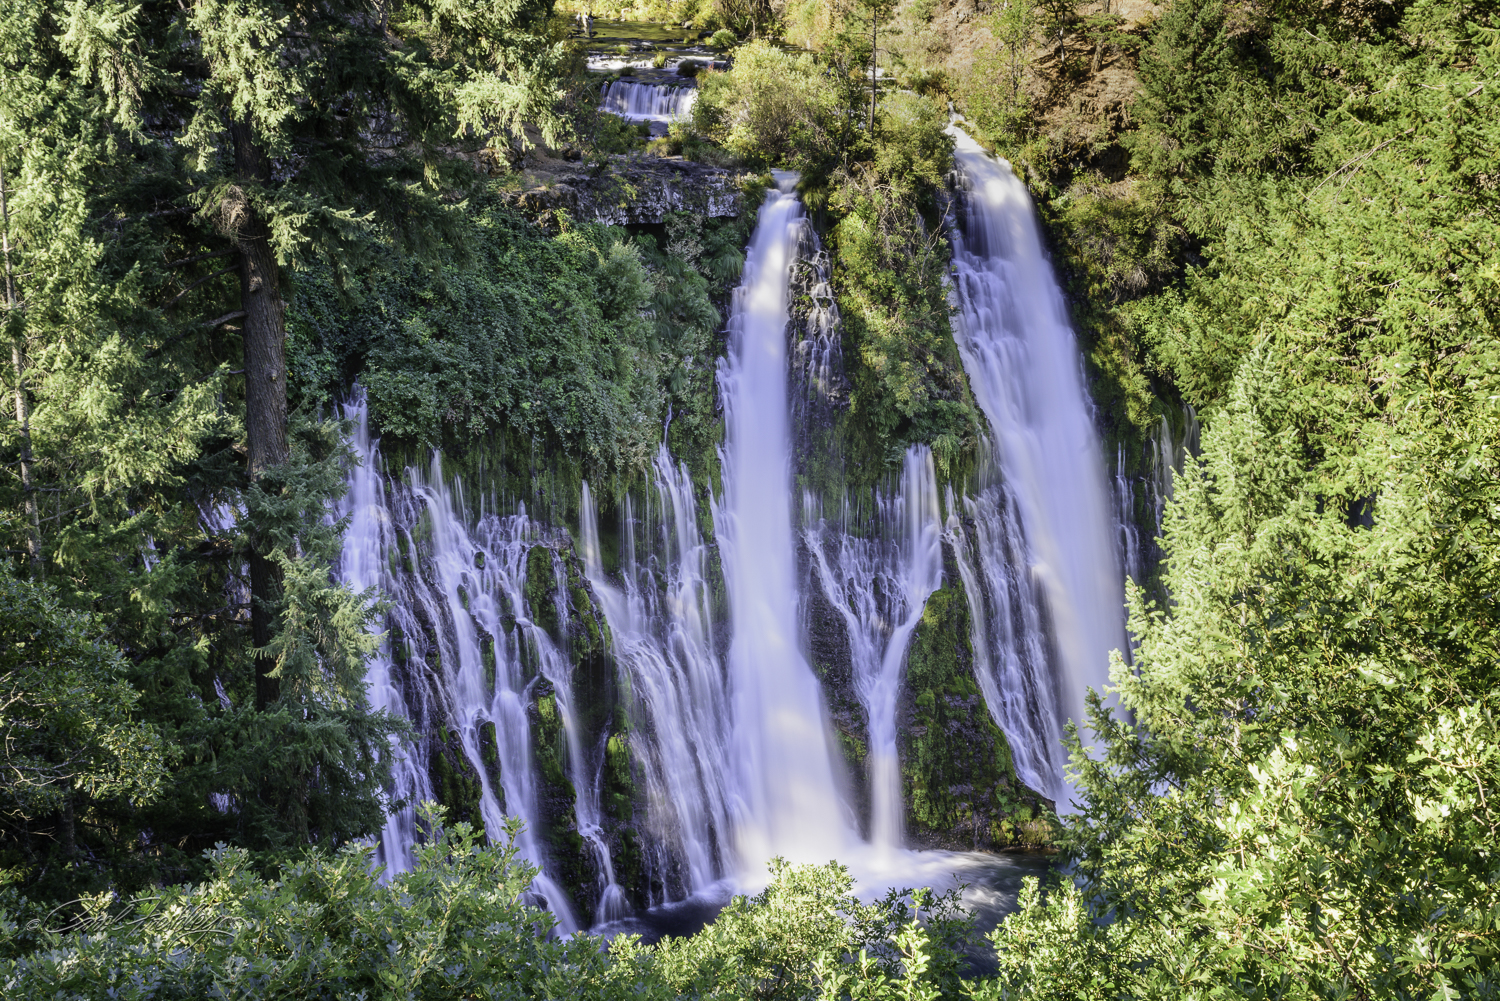 This is your first view of Burney Falls.  Turns out it is not even the best view, by far.  You can hear the roar of the waterfall as soon as you open your car door.  Just 150 feet later you see this image.  WOW!